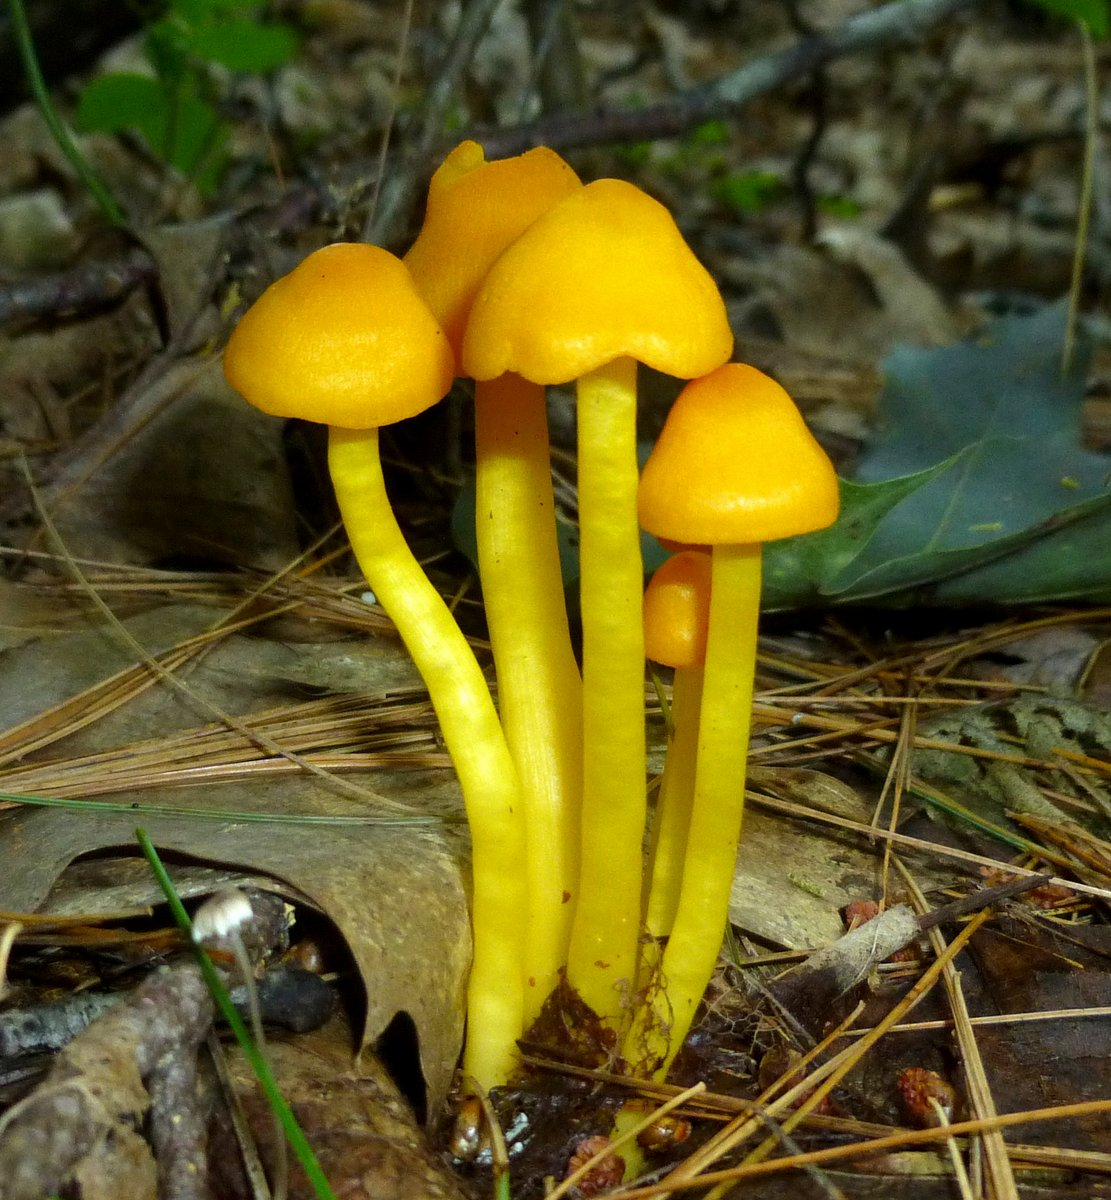 1. Butter Wax Cap Mushrooms